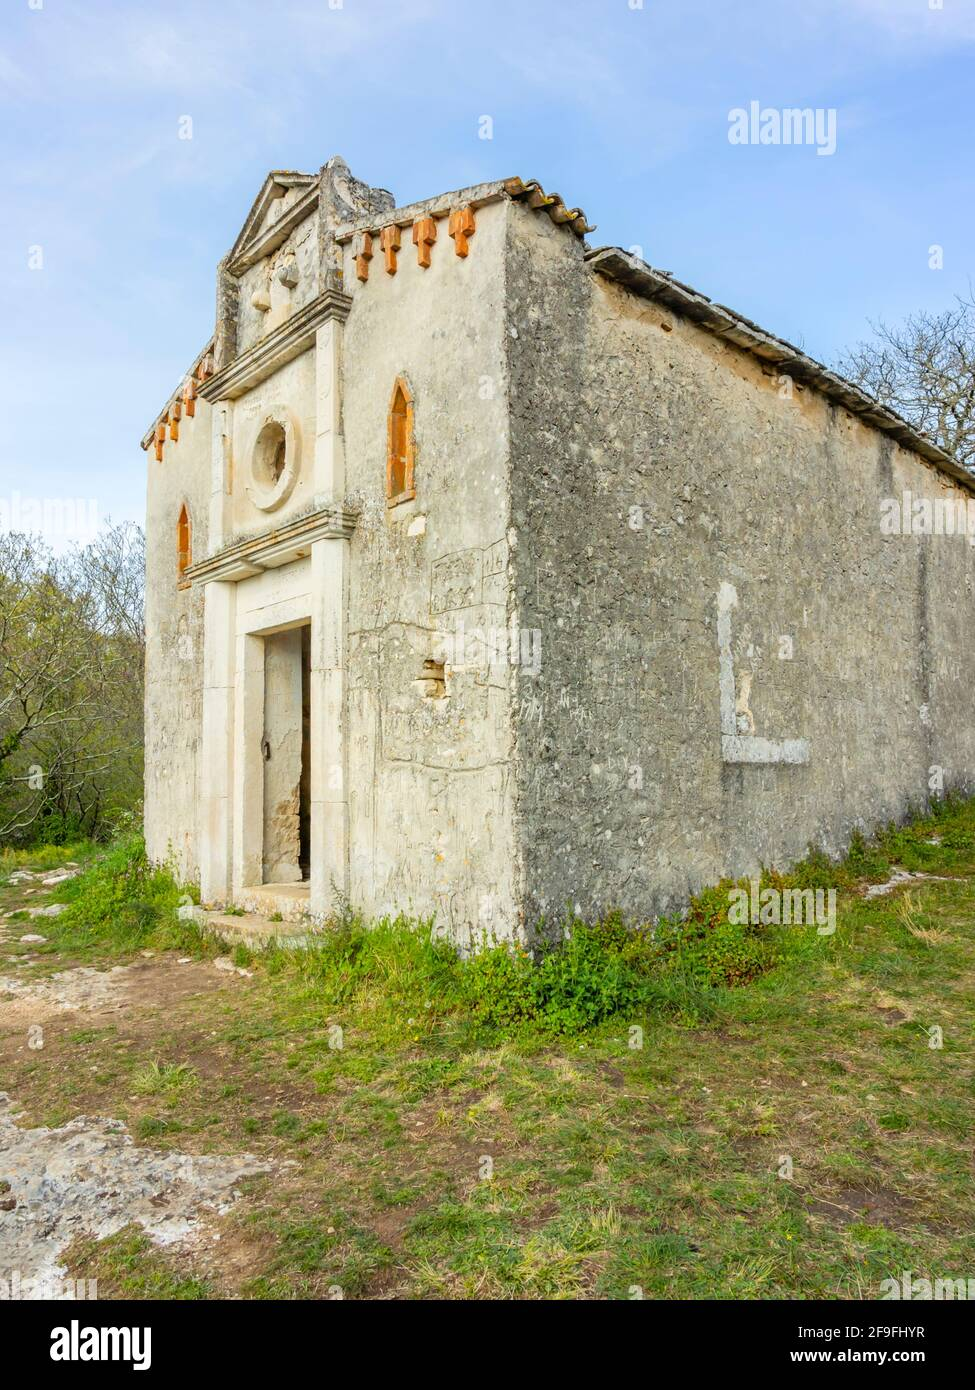 Exterior of Church St Saint Peter on peak crkva Svetog Petra apostola na vrhu on rock between Krancici and Bale in Istria in Croatia Europe Stock Photo